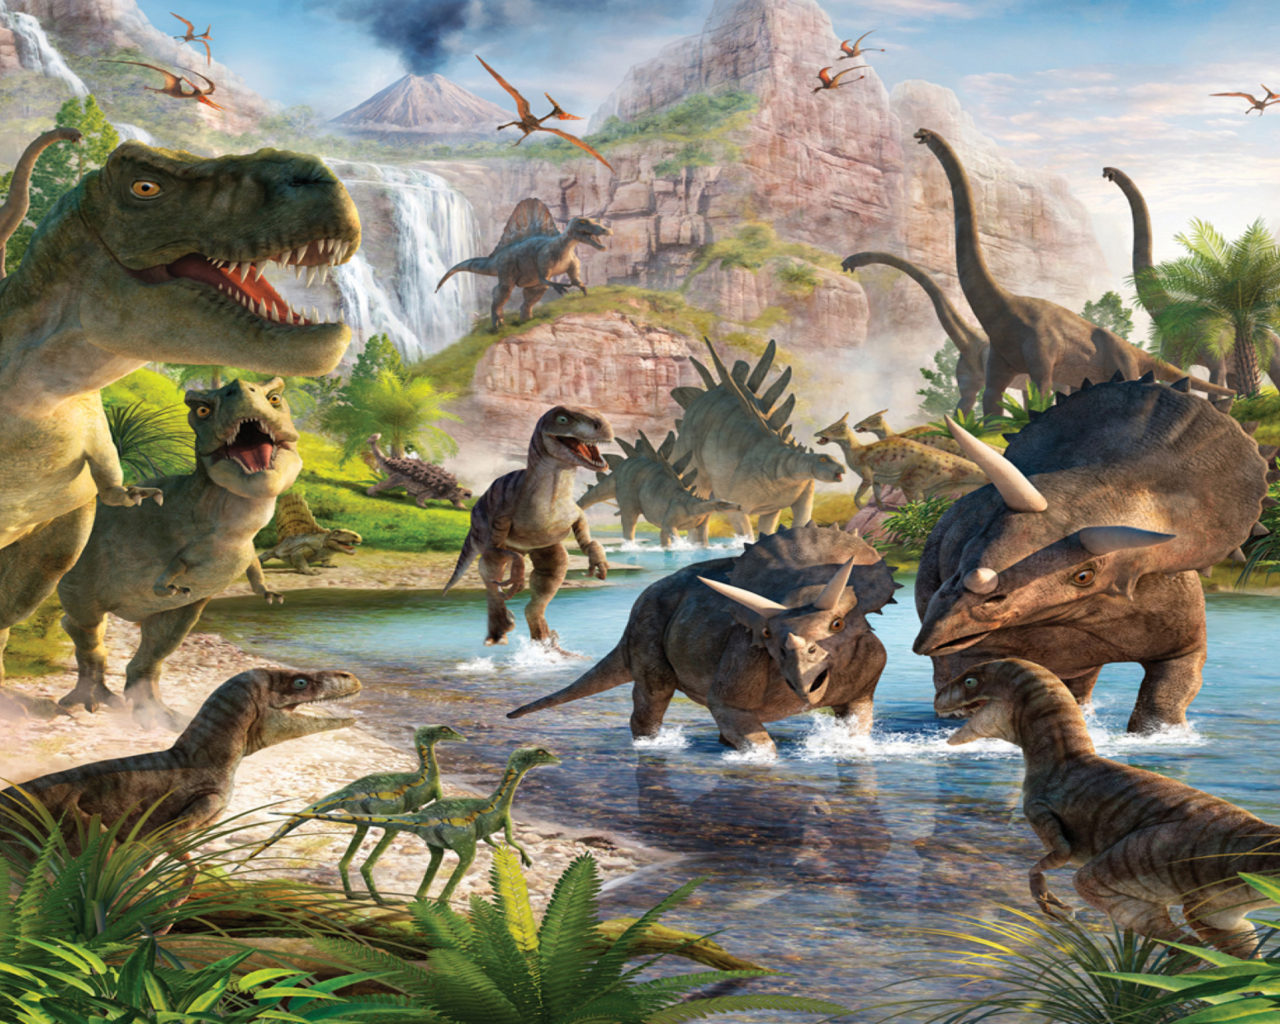 3d Android Wallpapers For Pc Dinosaurs Wallpapers For Desktop 11686 Full Hd Wallpaper